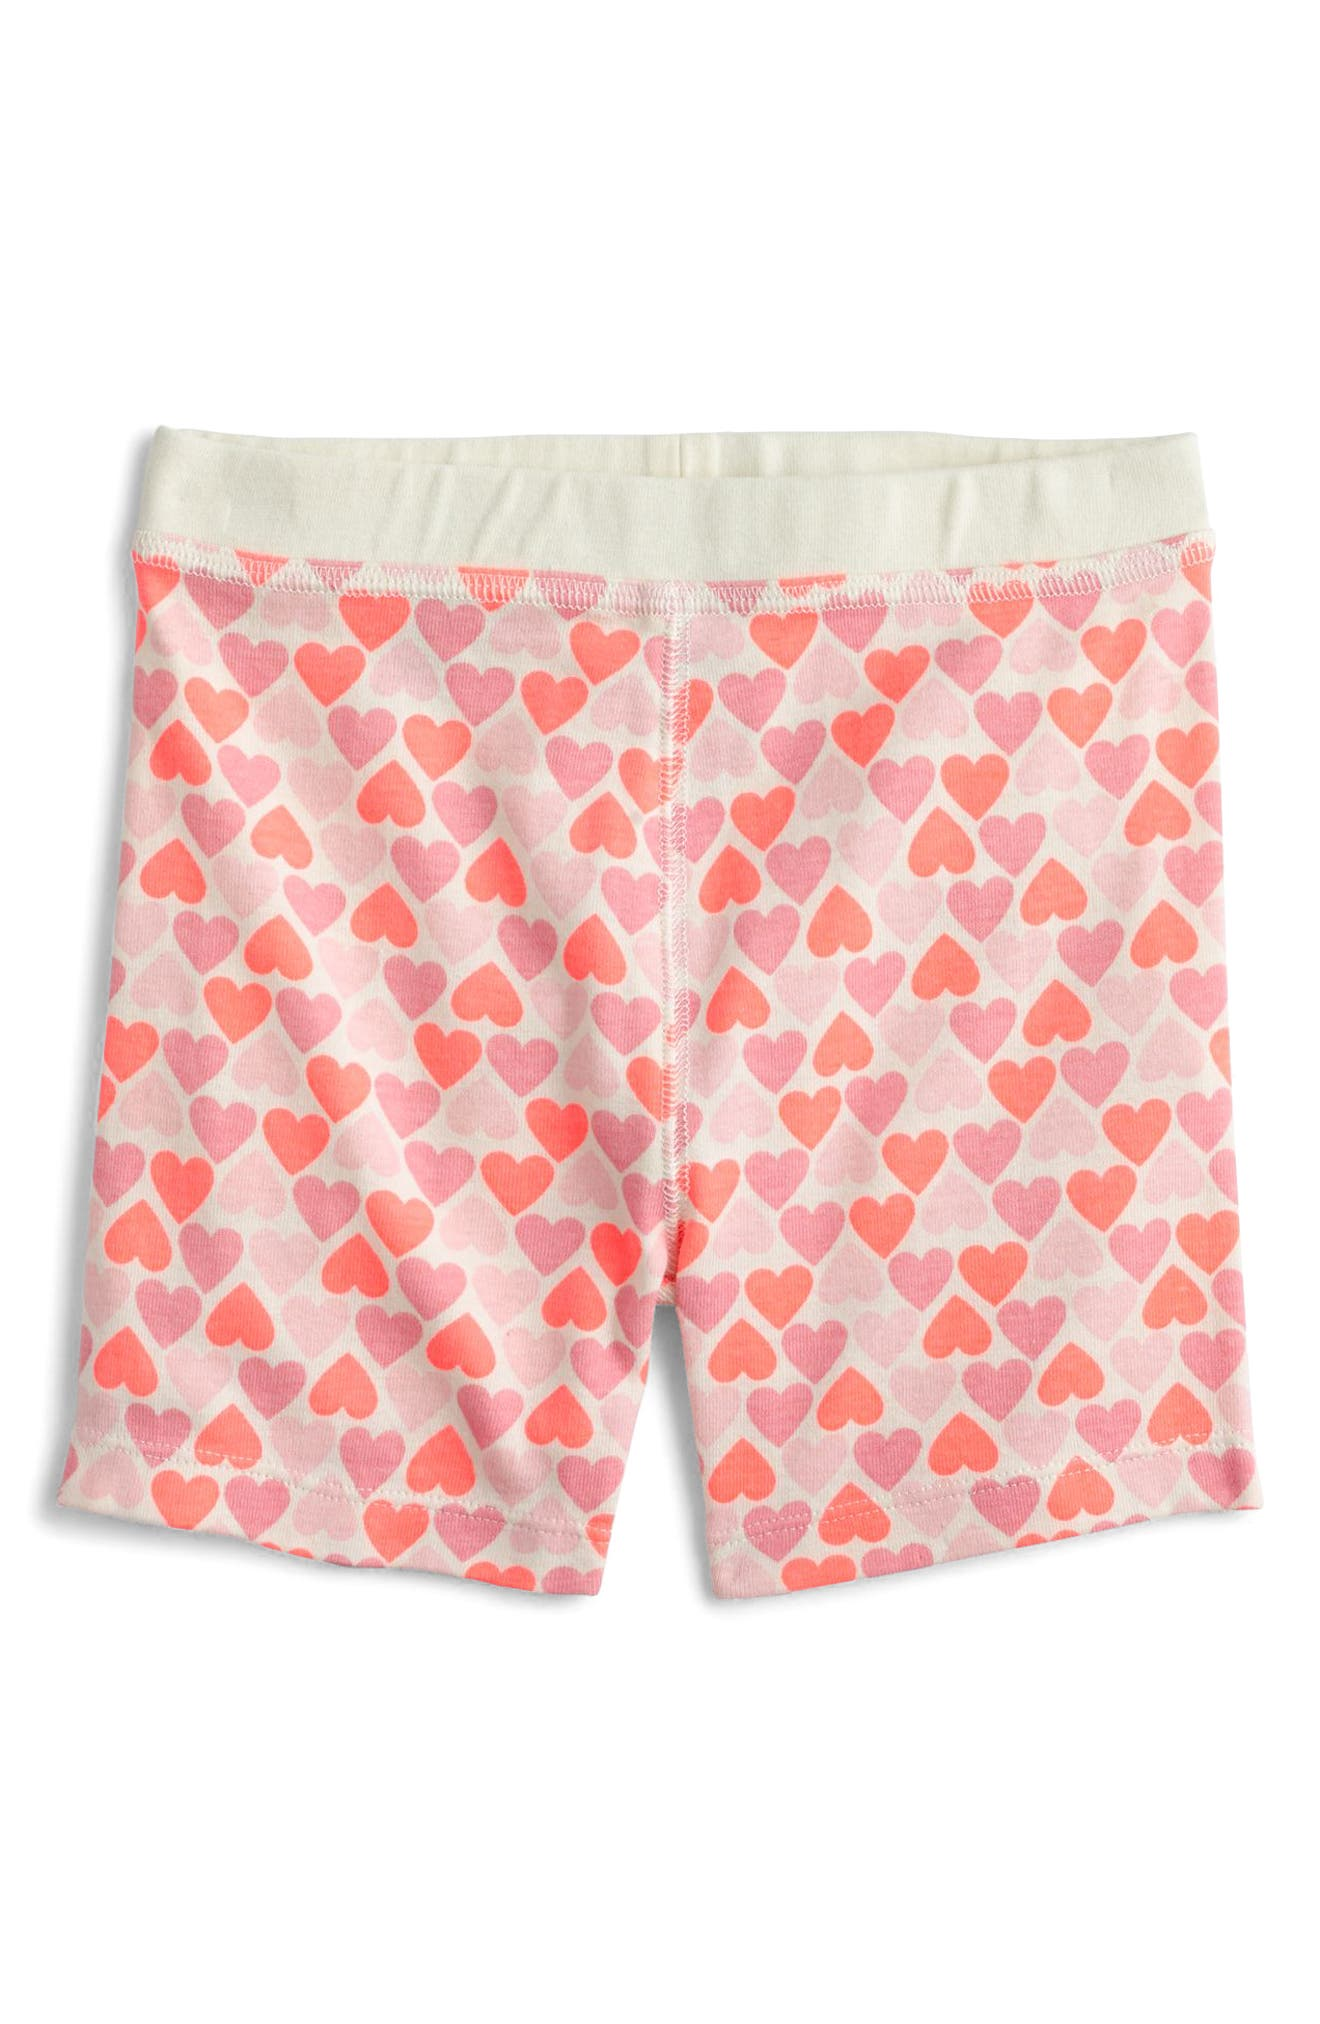 Stacked Hearts Fitted Two-Piece Pajamas,                             Alternate thumbnail 3, color,                             800